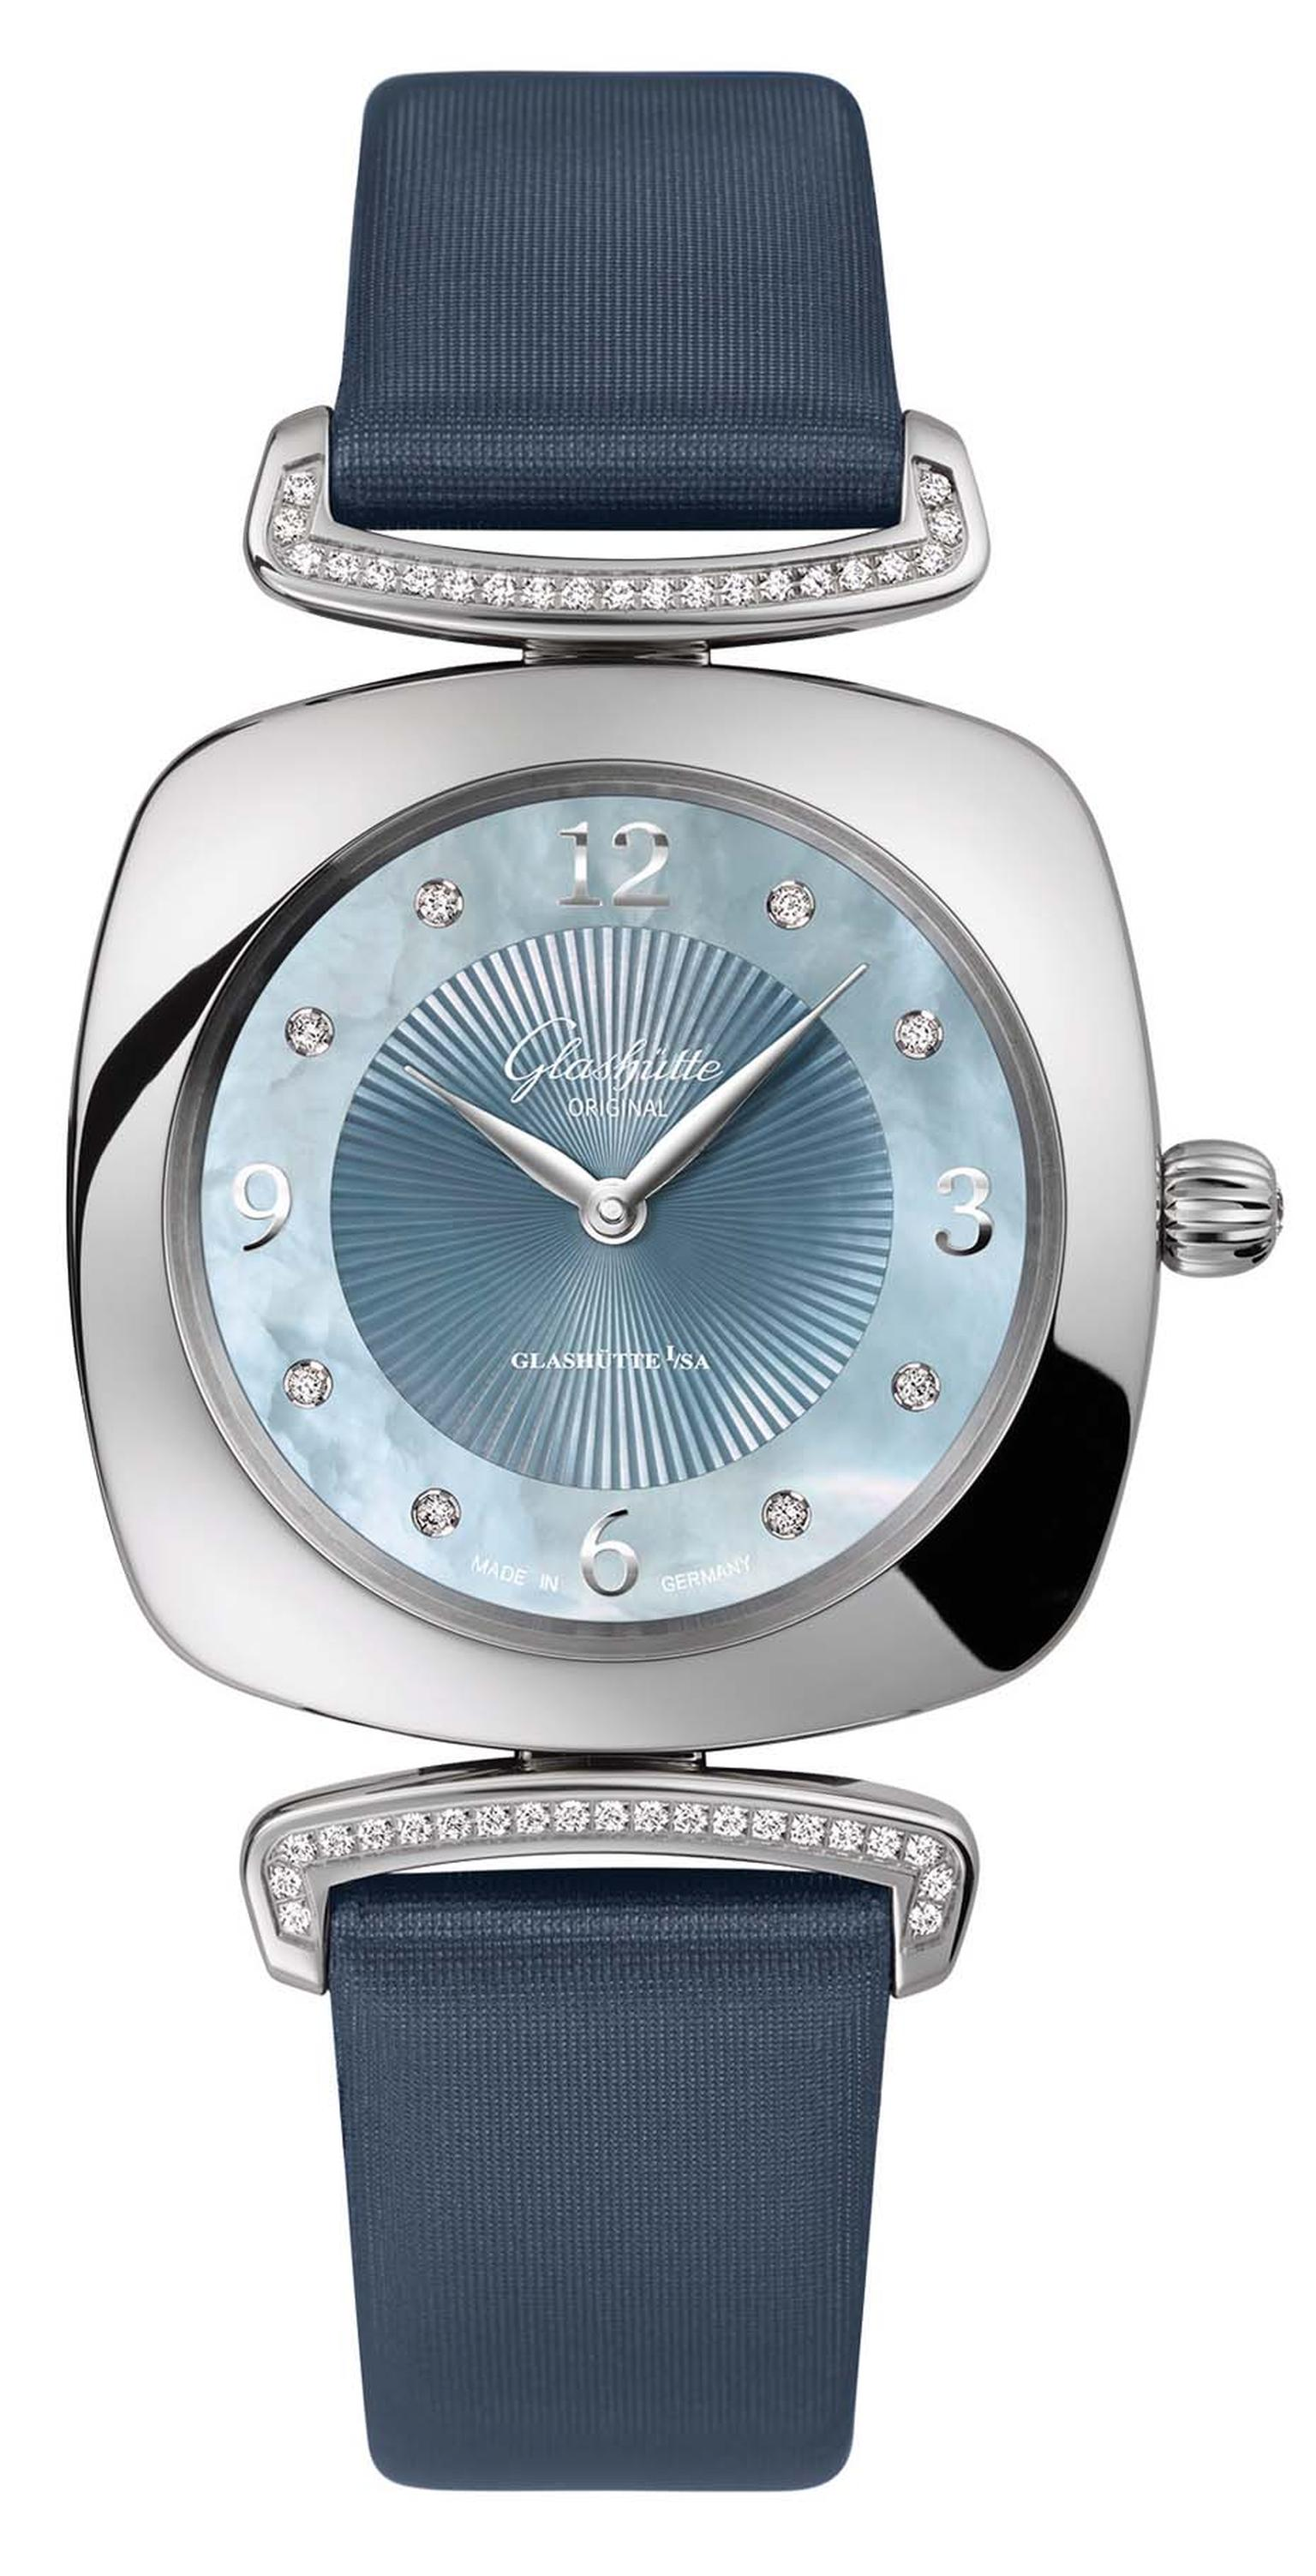 Glashütte Pavonina ladies' watch with a cushion-shaped 31 x 31mm stainless steel case is adorned with a lovely blue mother-of-pearl dial, diamond indices and diamond-set lugs.